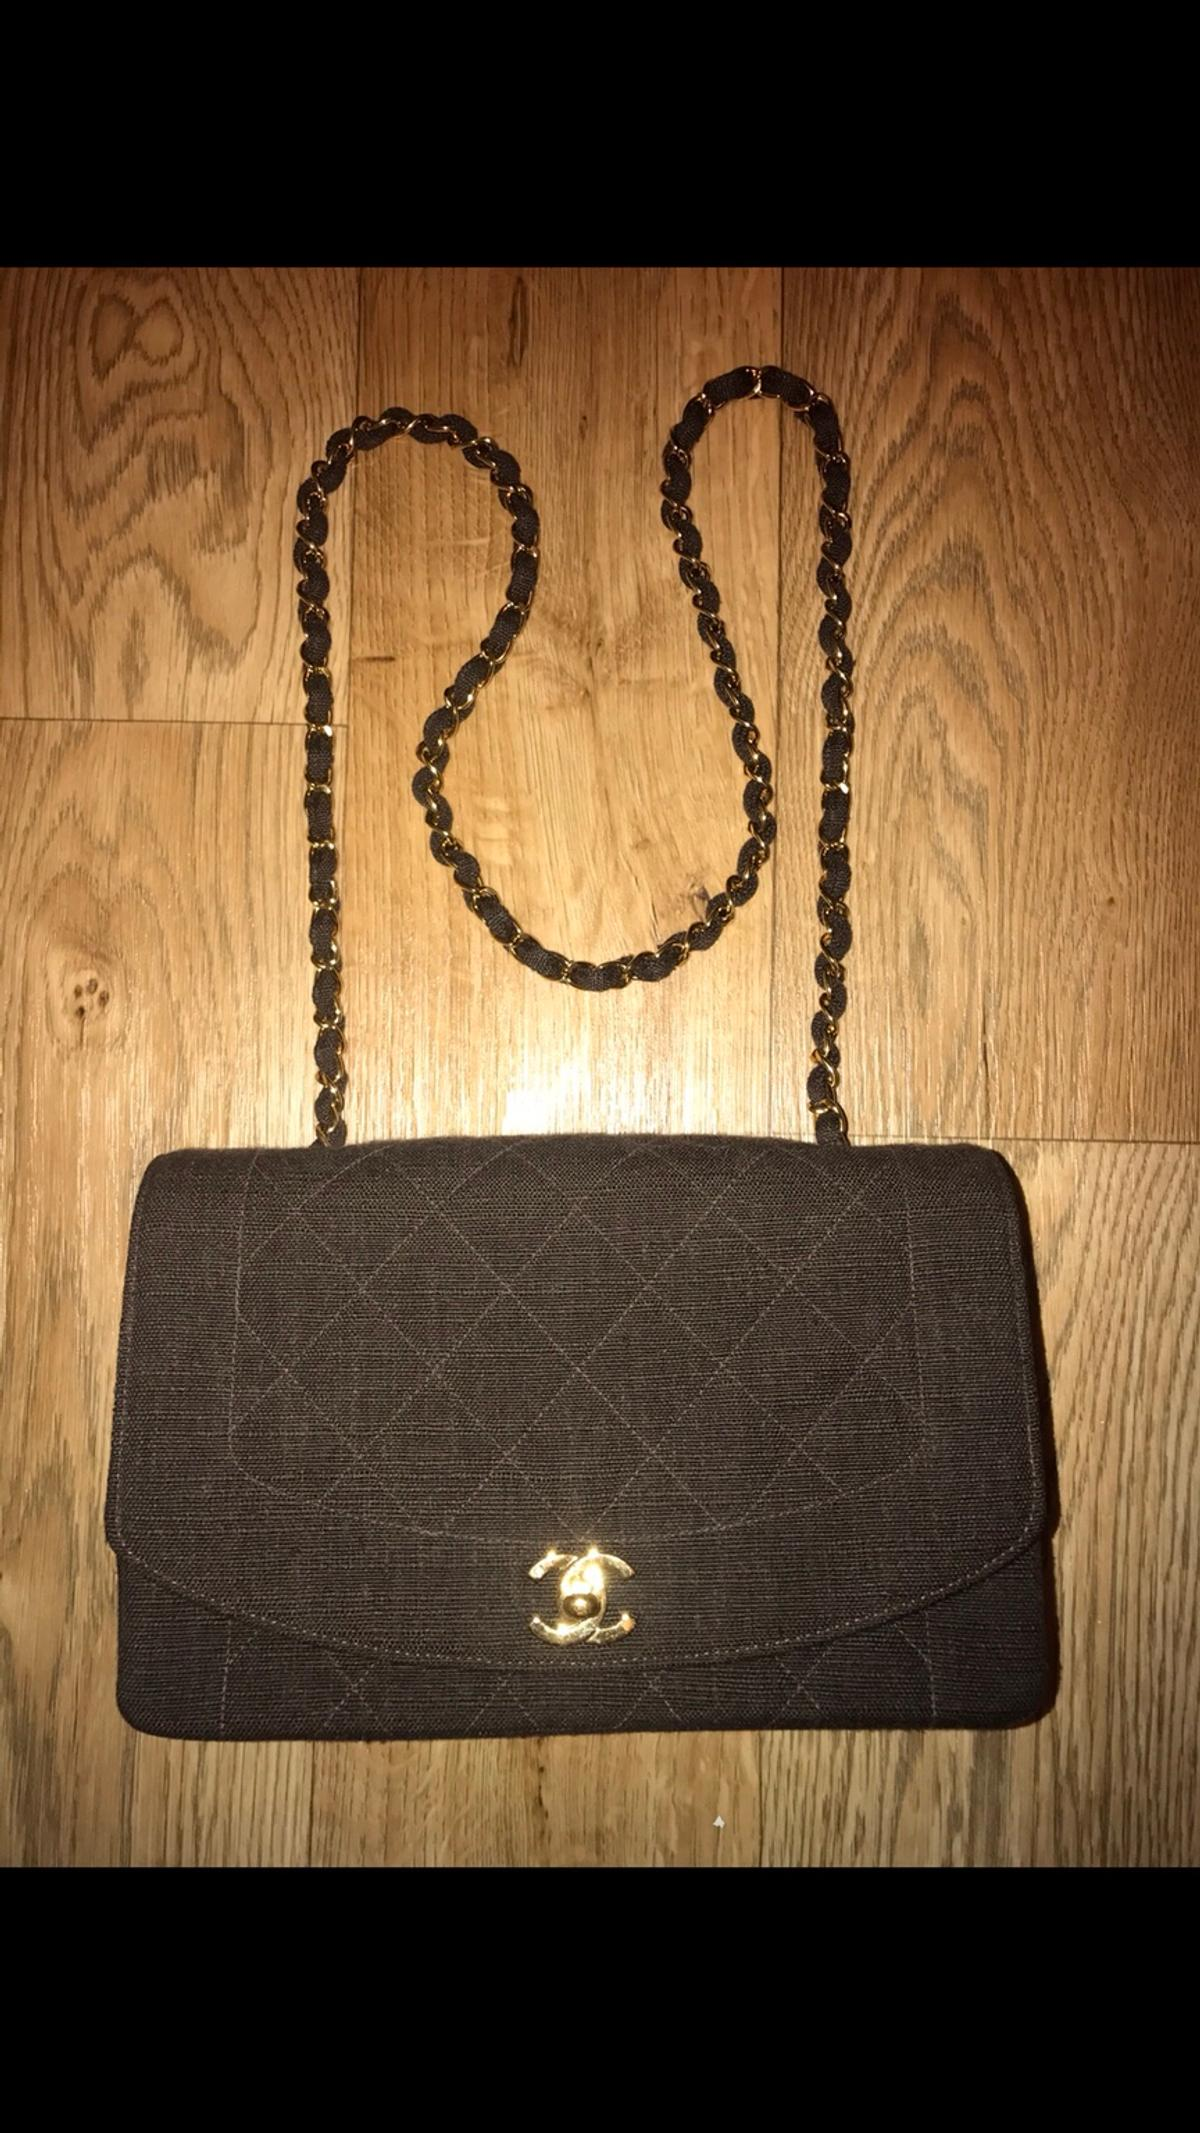 708b7afa Authentic, vintage, classic Chanel flap bag in SS0-Sea for £800.00 ...